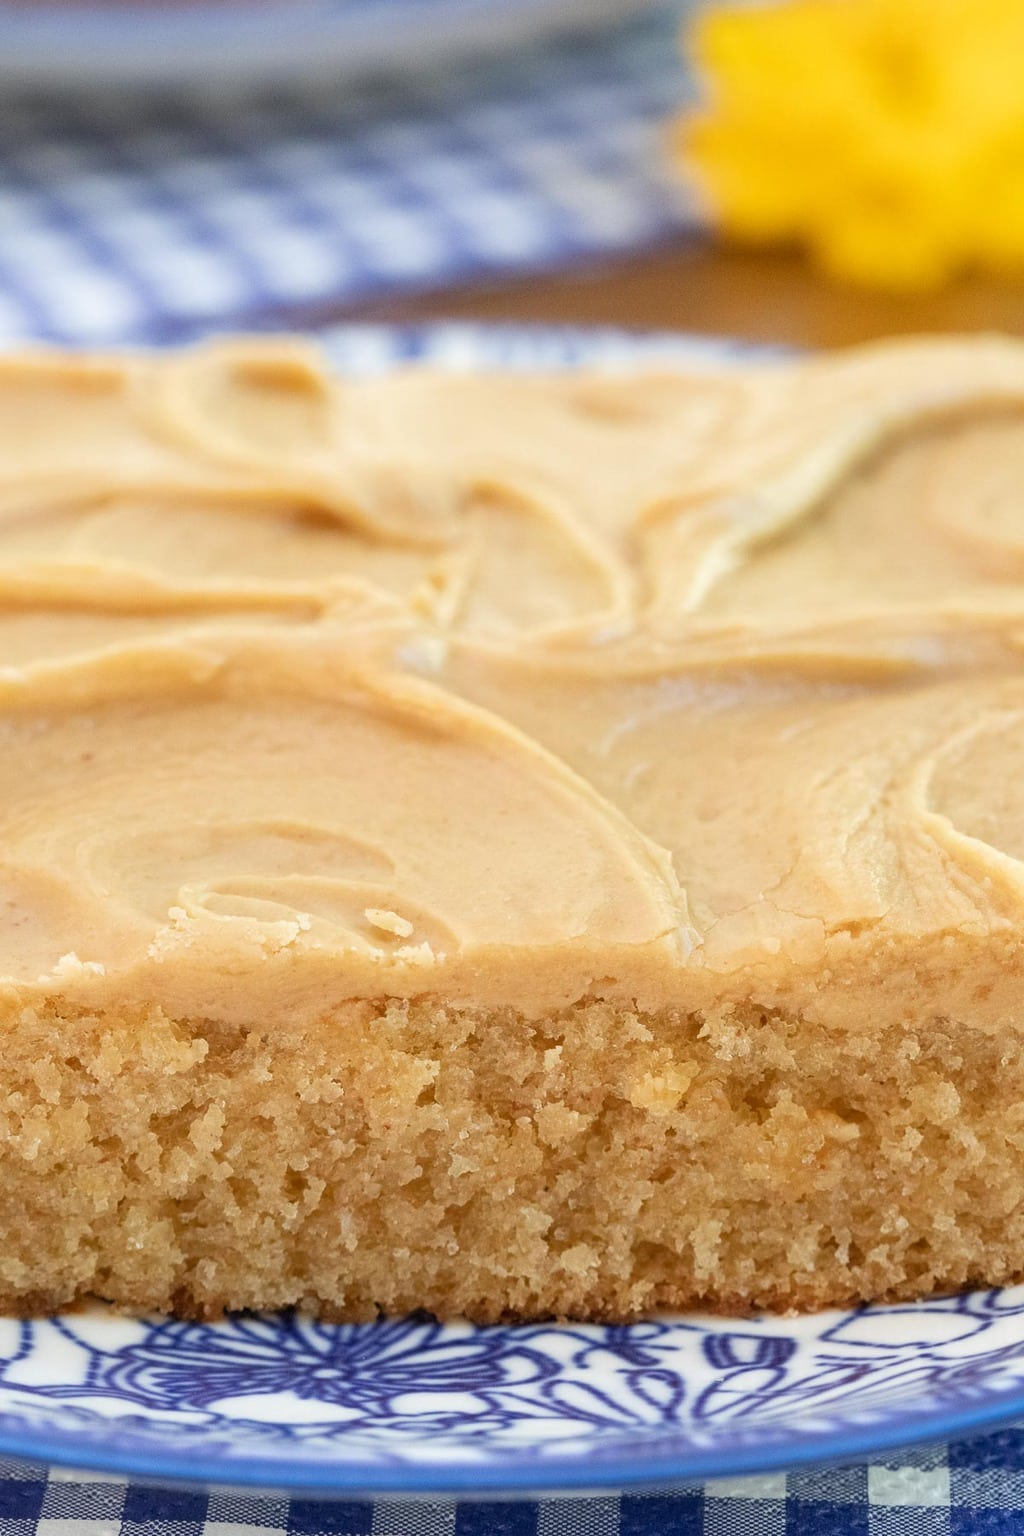 Vertical closeup photo of a slice of Peanut Butter Texas Sheet Cake on a blue and white patterned serving plate.